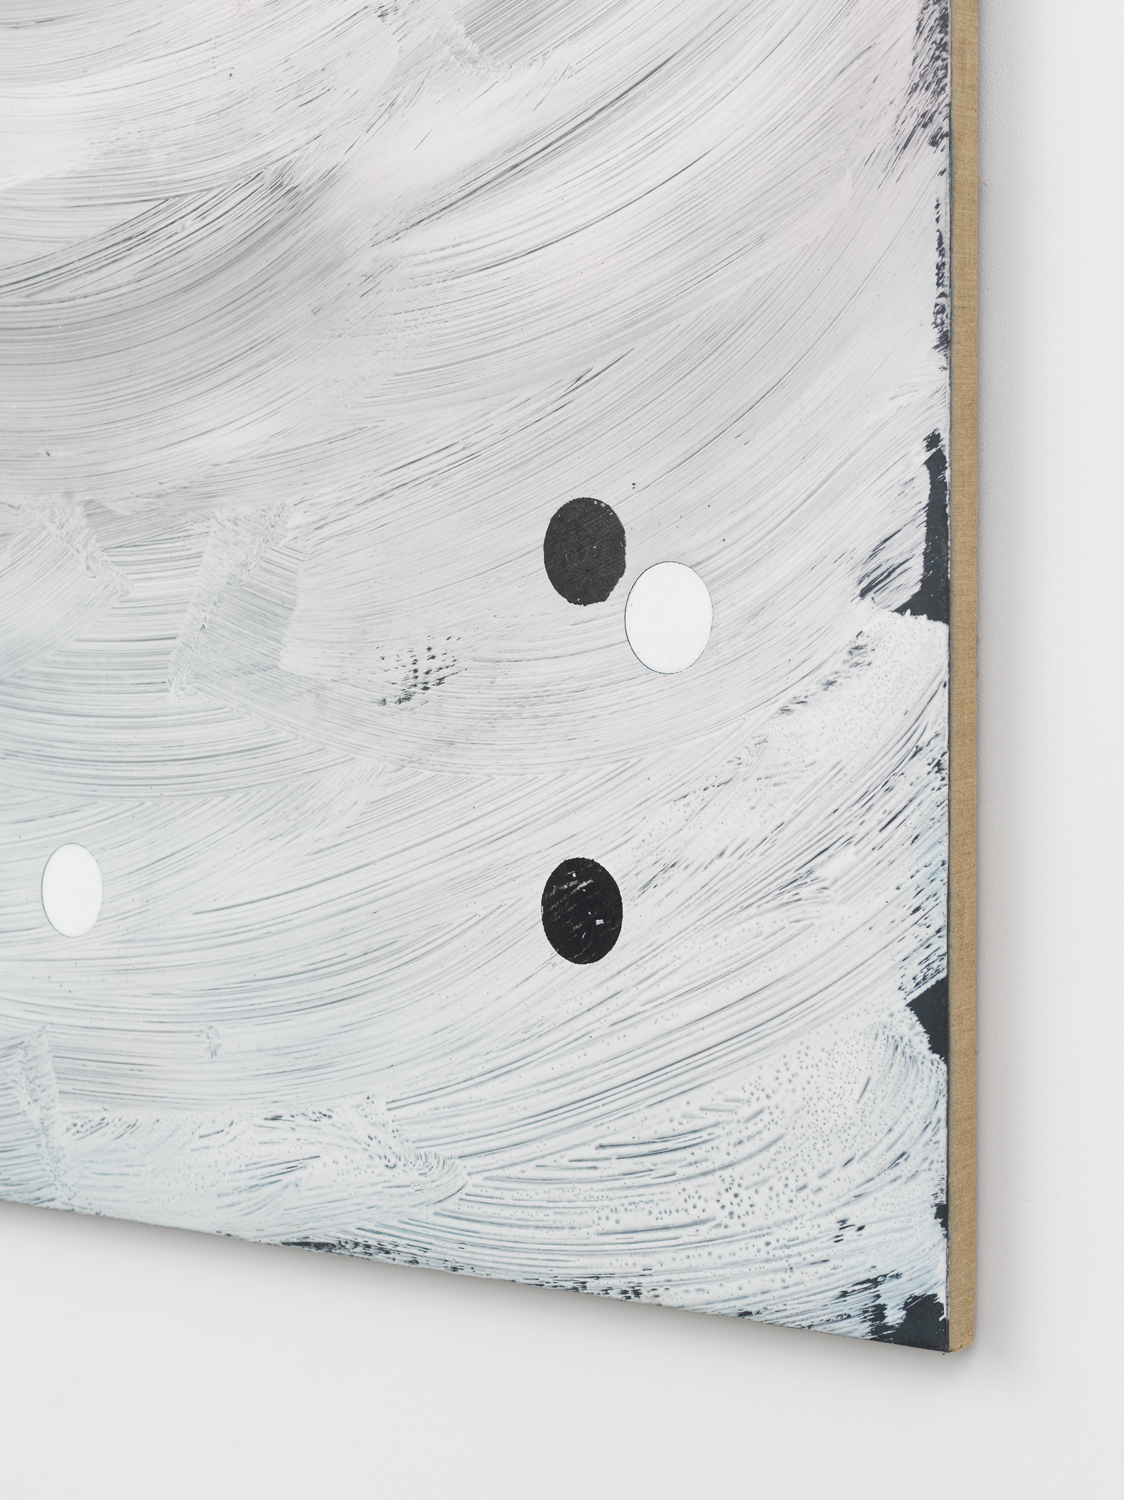 Alex Kwartler, Untitled (detail), 2019, plaster, acrylic, and oil on linen, 72h x 48w in.